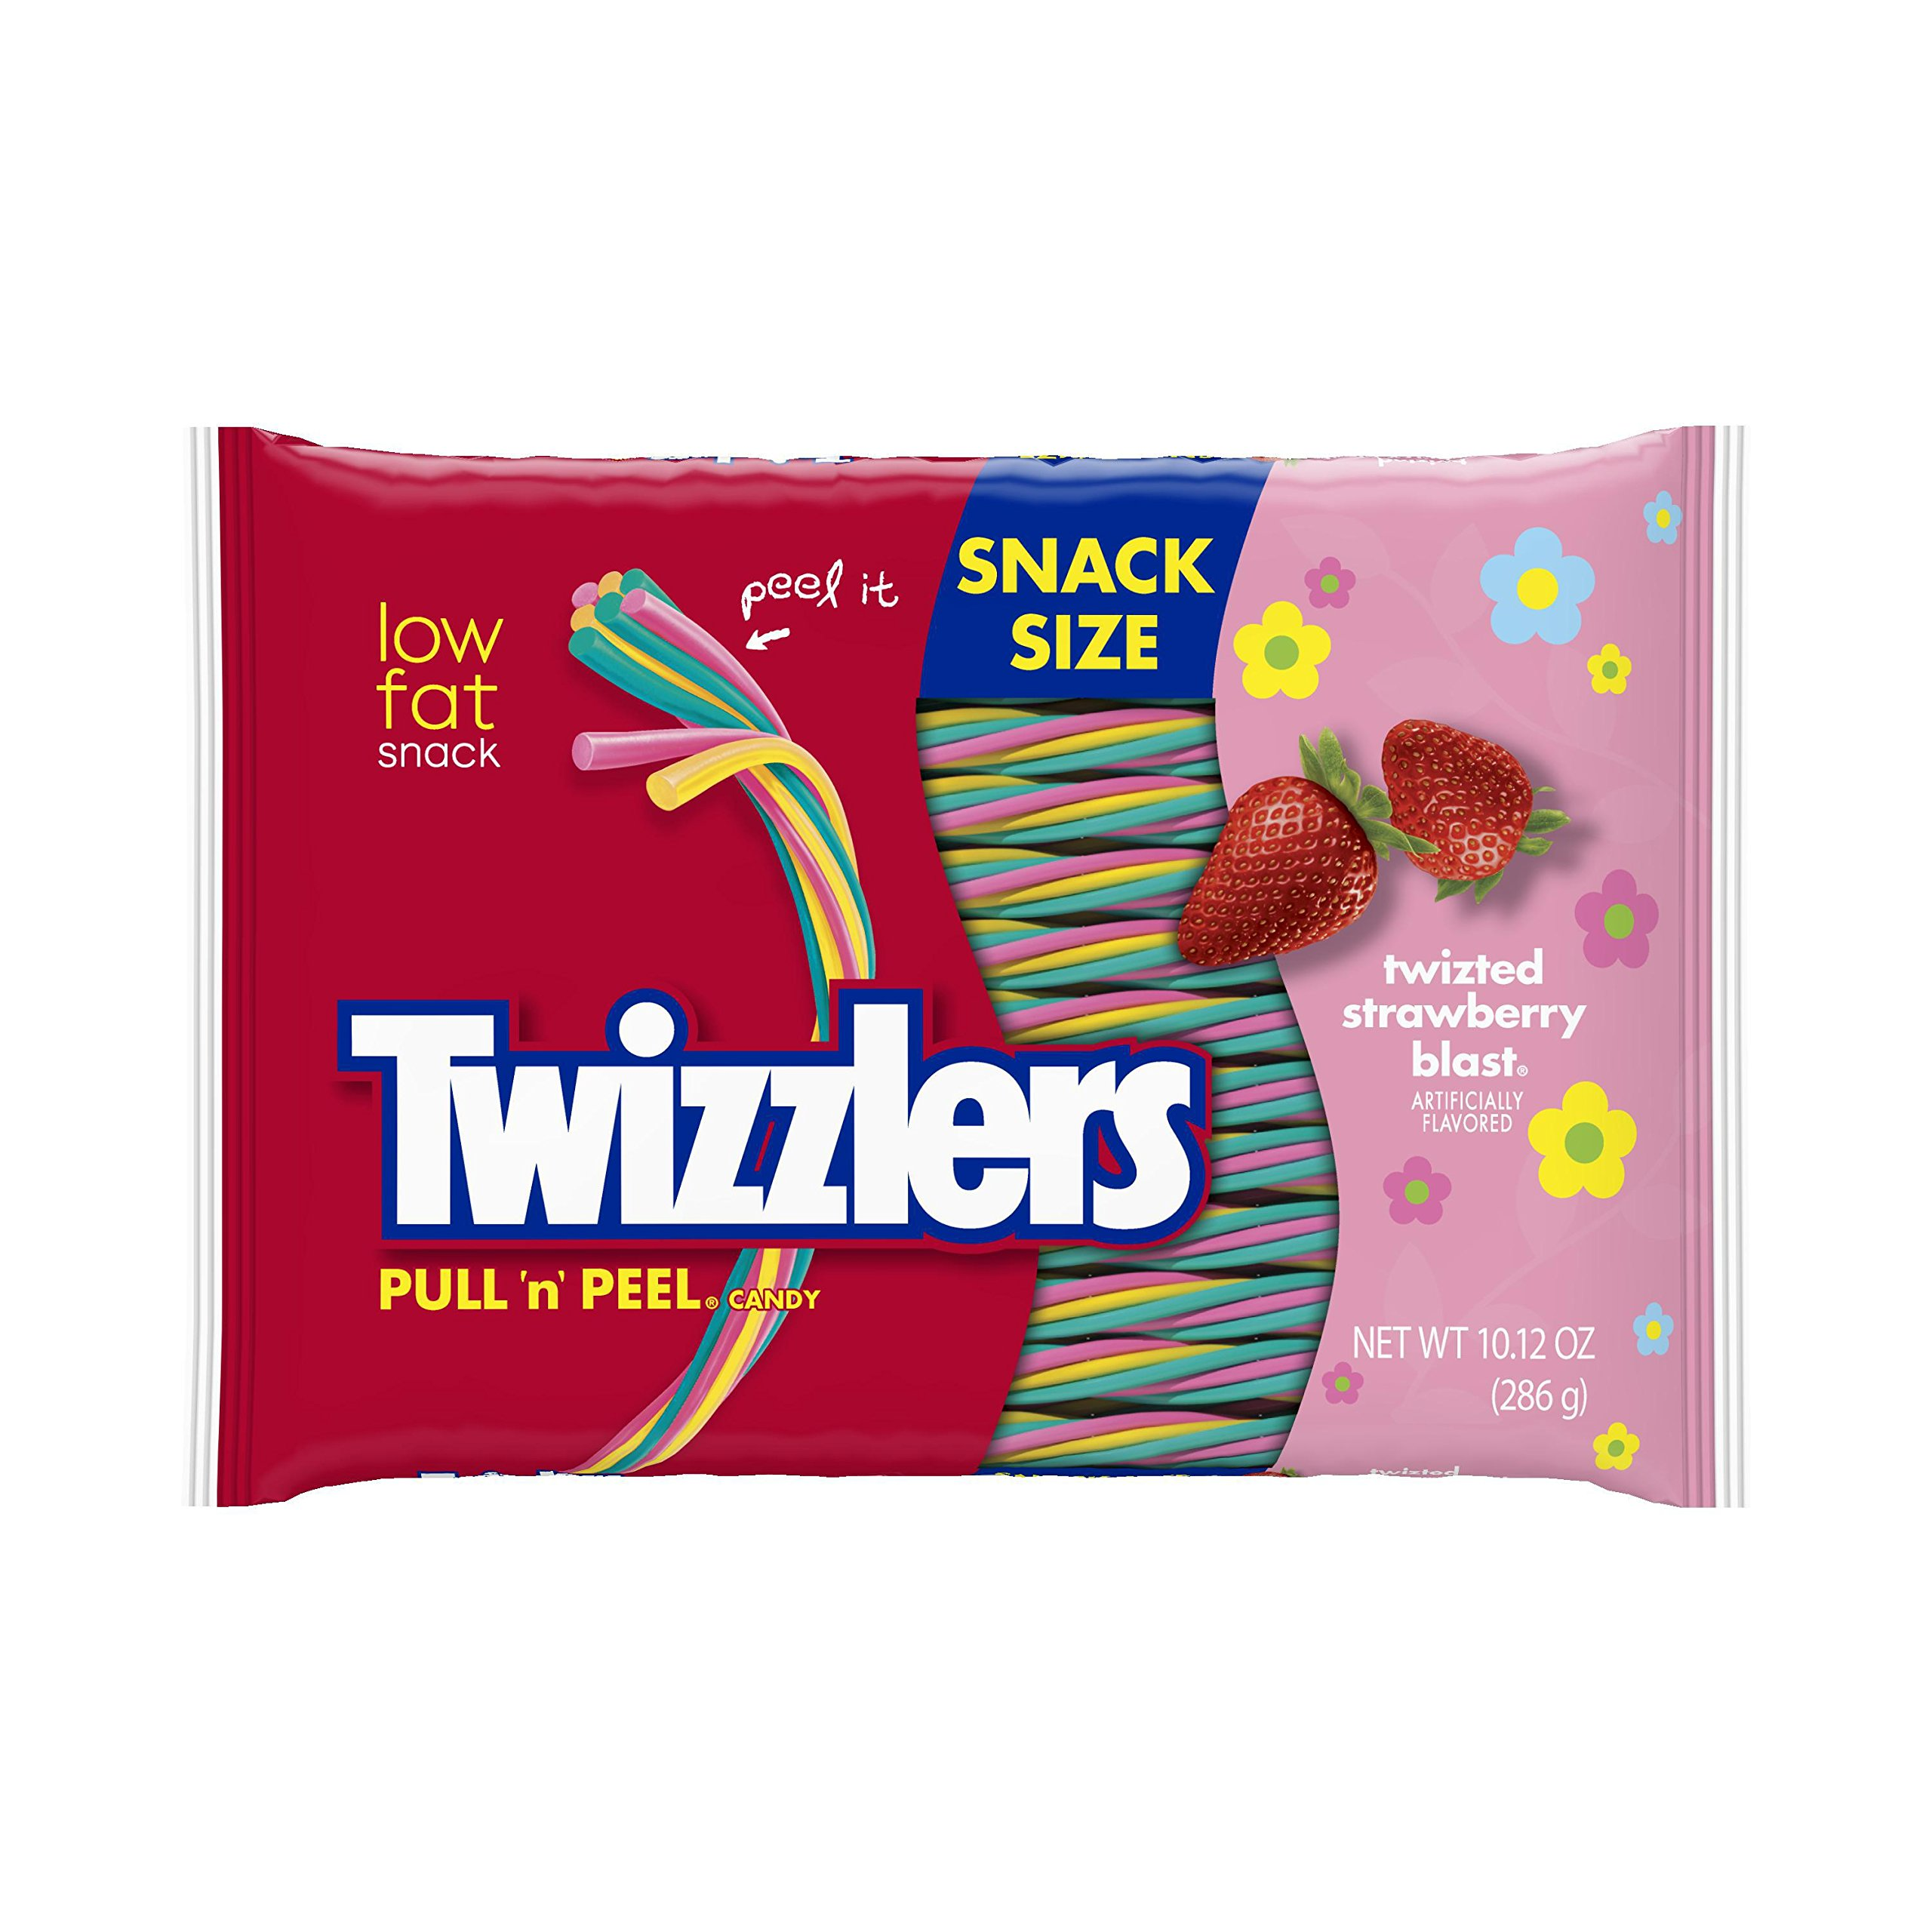 TWIZZLERS PULL 'N' PEEL Easter Snack Size Candy, TWIZTED Strawberry Blast Flavored , 10.12 Ounce Bag (Pack of 6) by Twizzlers